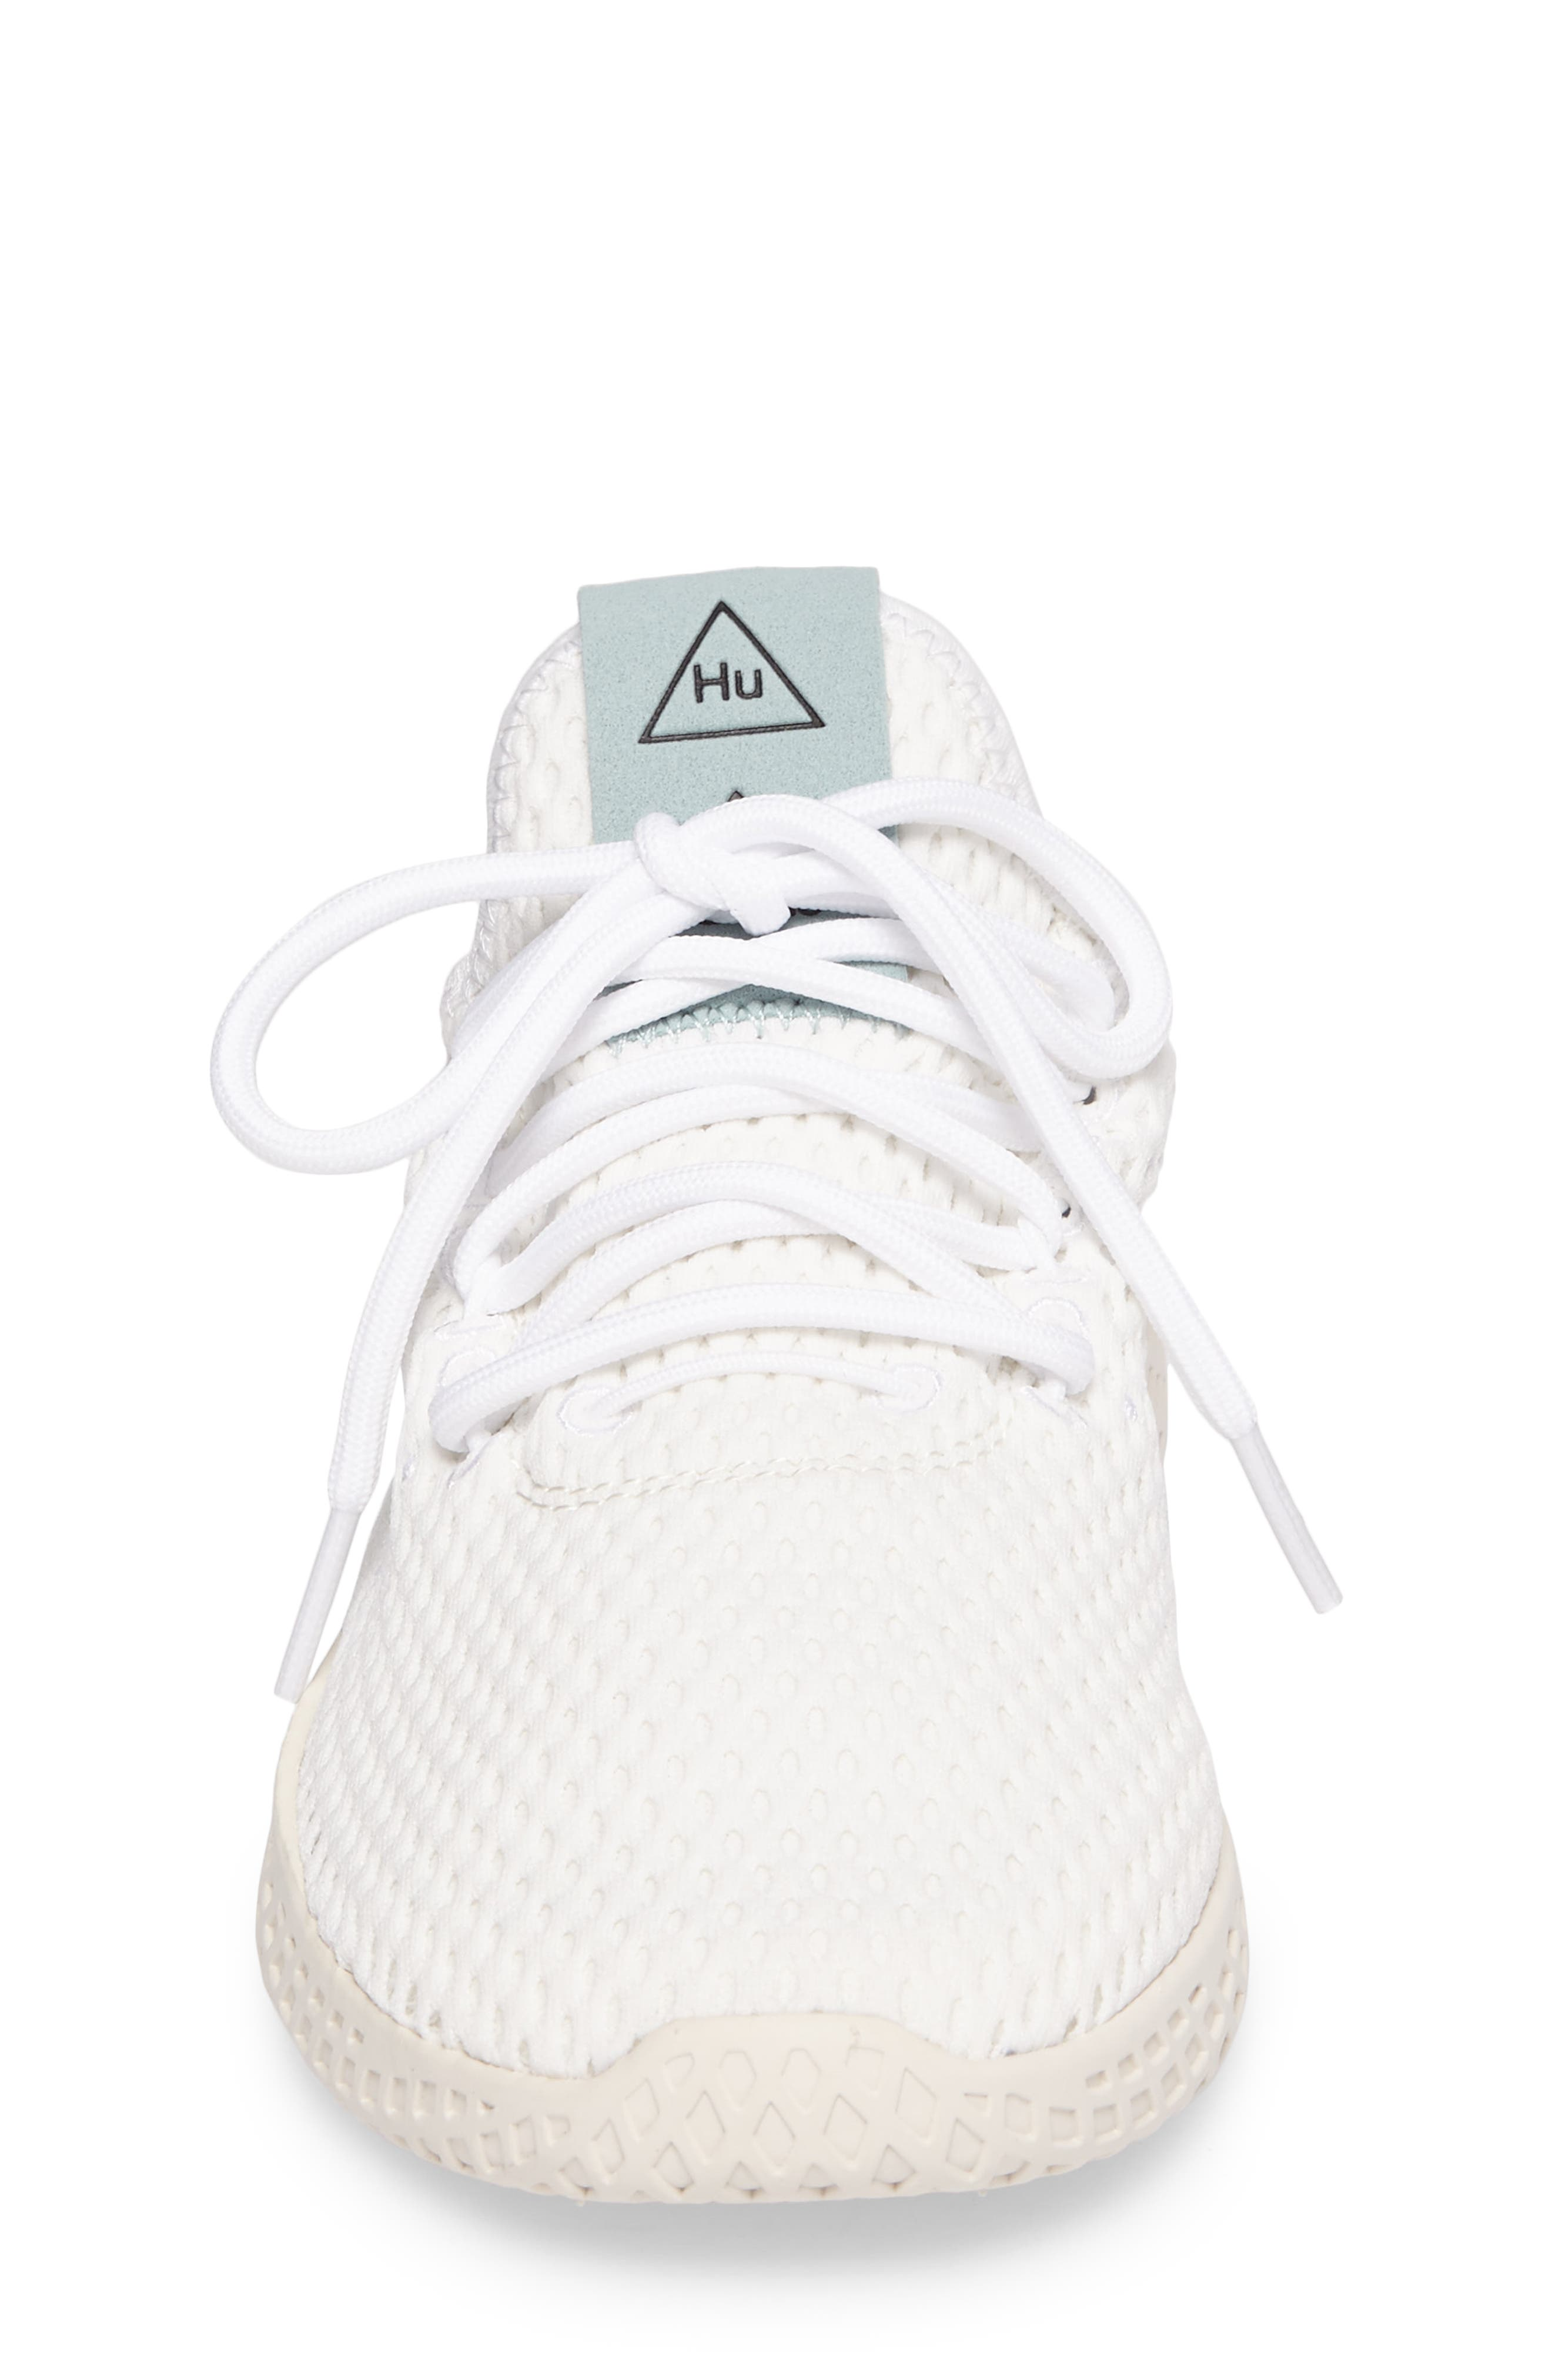 Originals x Pharrell Williams The Summers Mesh Sneaker,                             Alternate thumbnail 4, color,                             Footwear White/ Linen Green